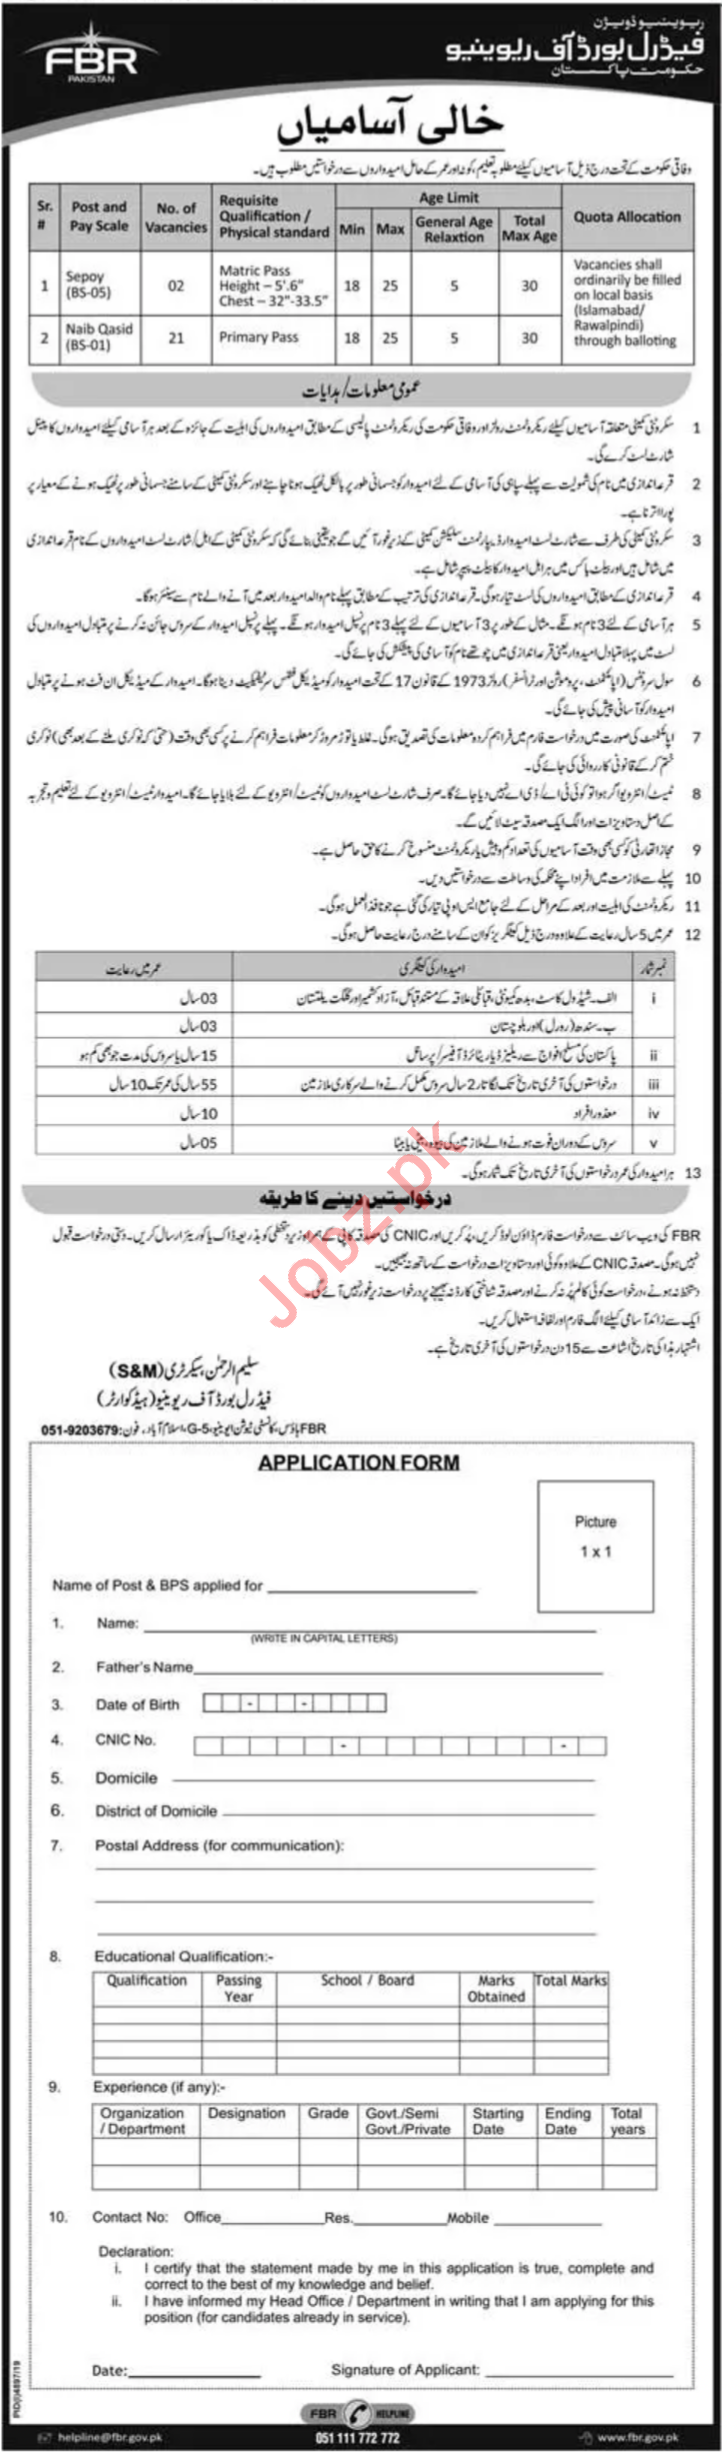 FBR Federal Board of Revenue Jobs 2020 Naib Qasid & Sepoy